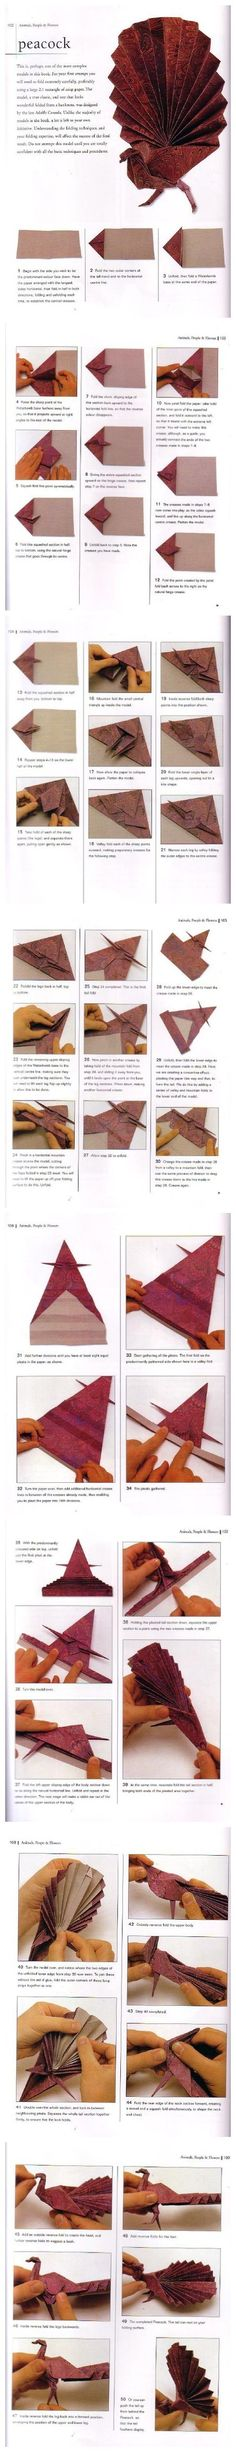 peacock #origami #paper #crafts #DIY #creative #cards